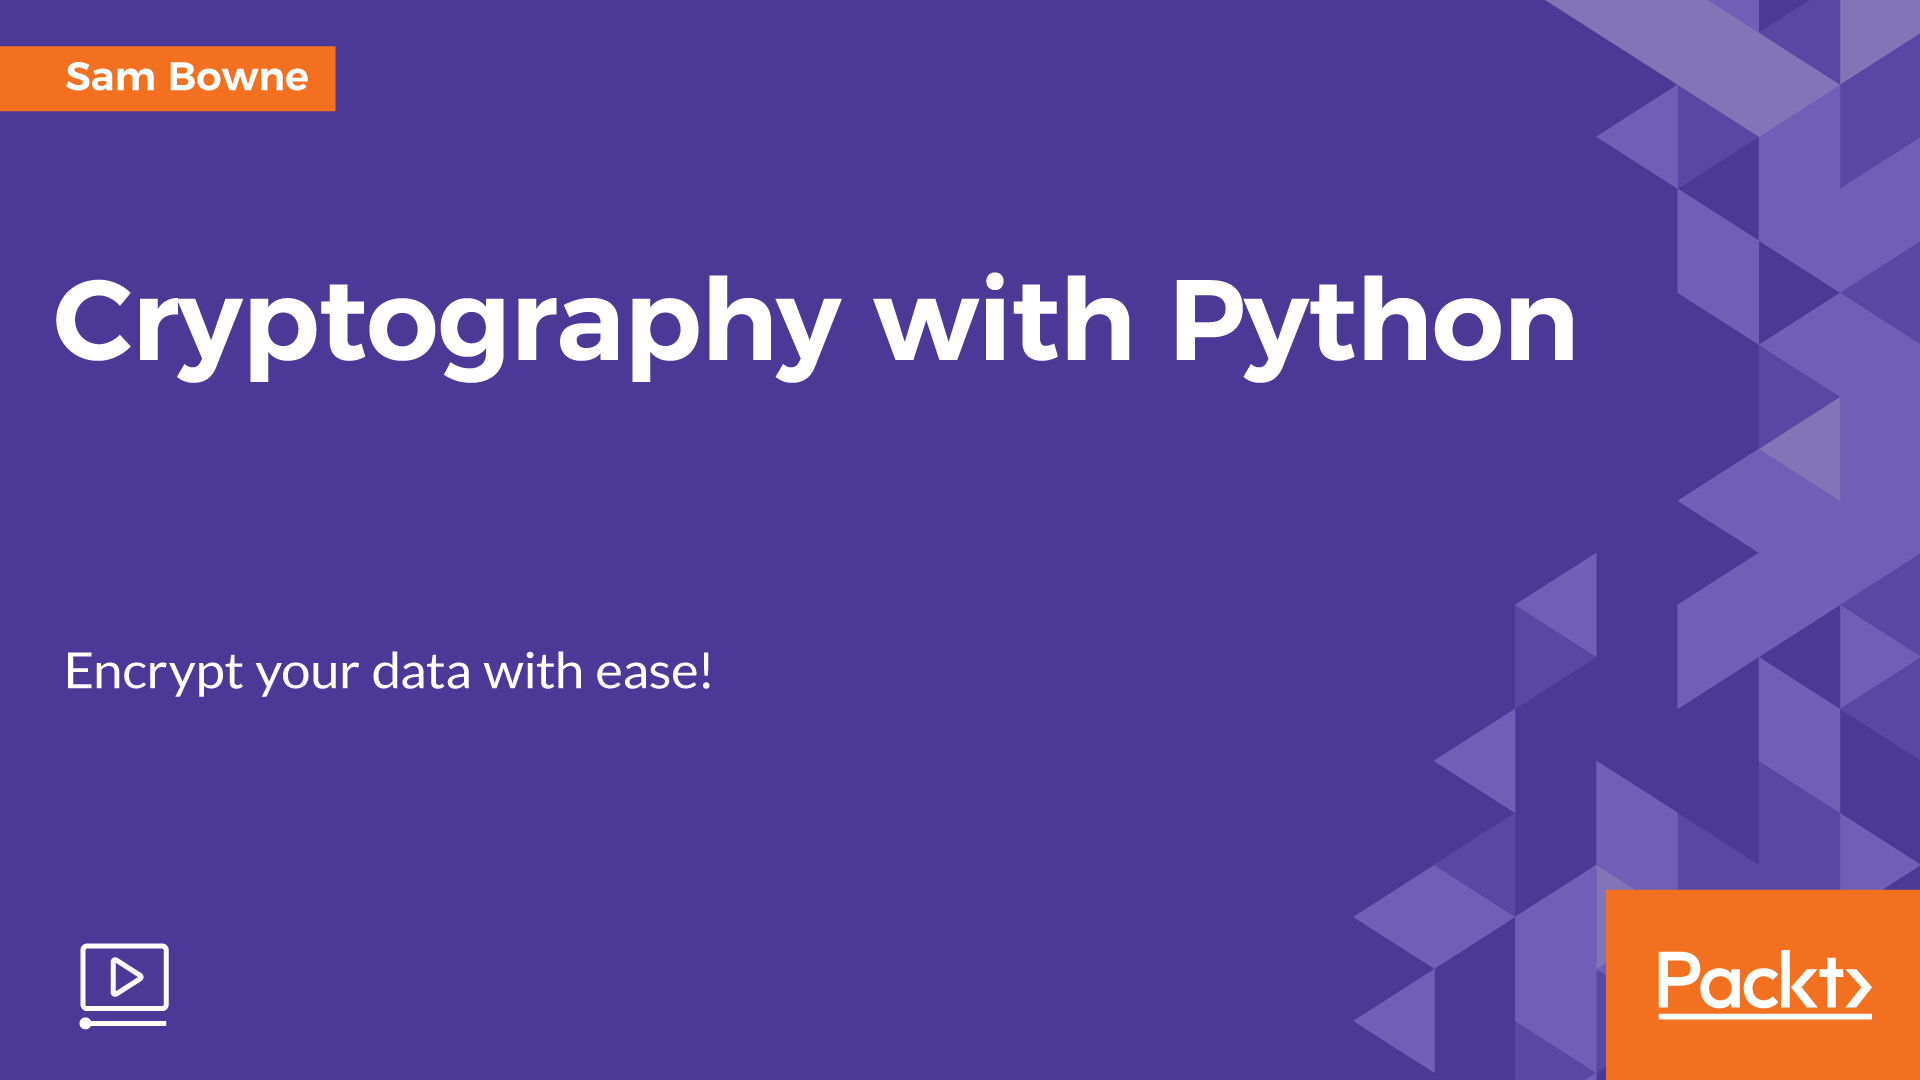 Amazon com: Watch Cryptography with Python   Prime Video